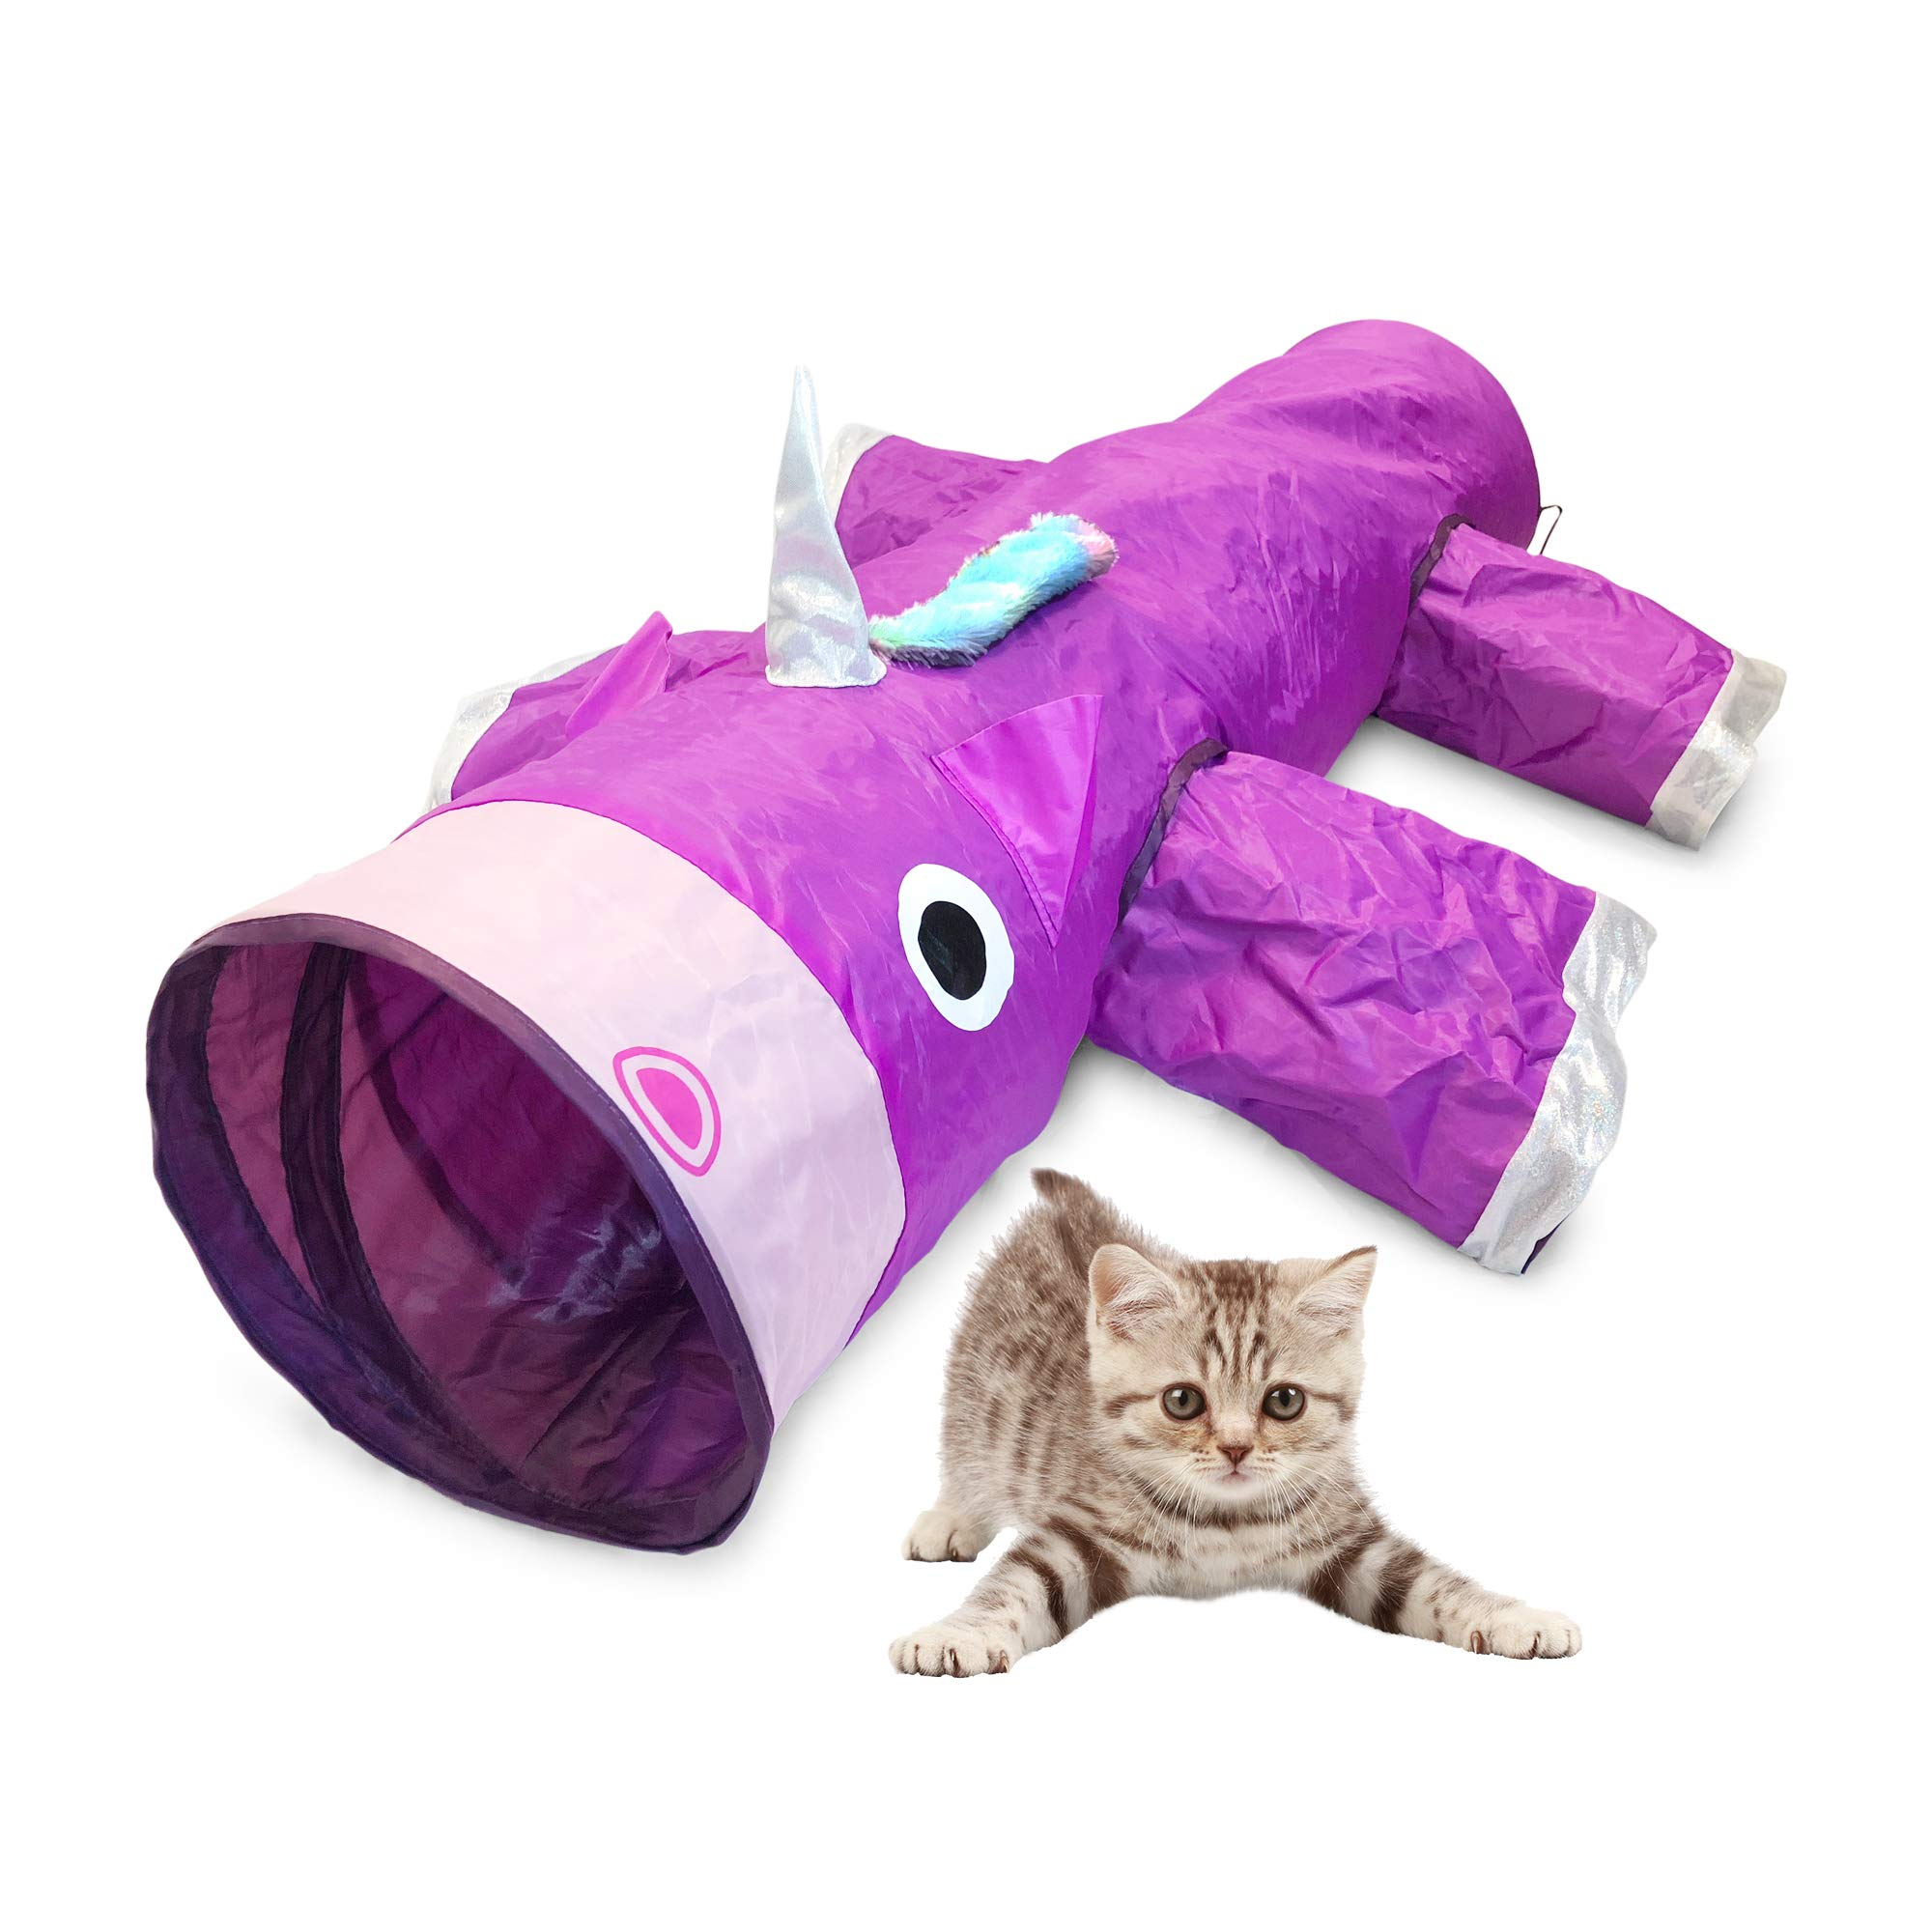 Pet Craft Supply Magic Mewnicorn Multi Cat Tunnel Boredom Relief Toys with Crinkle Feather String for Cats, Rabbits, Kittens, and Dogs for Hiding Hunting and Resting by Pet Craft Supply